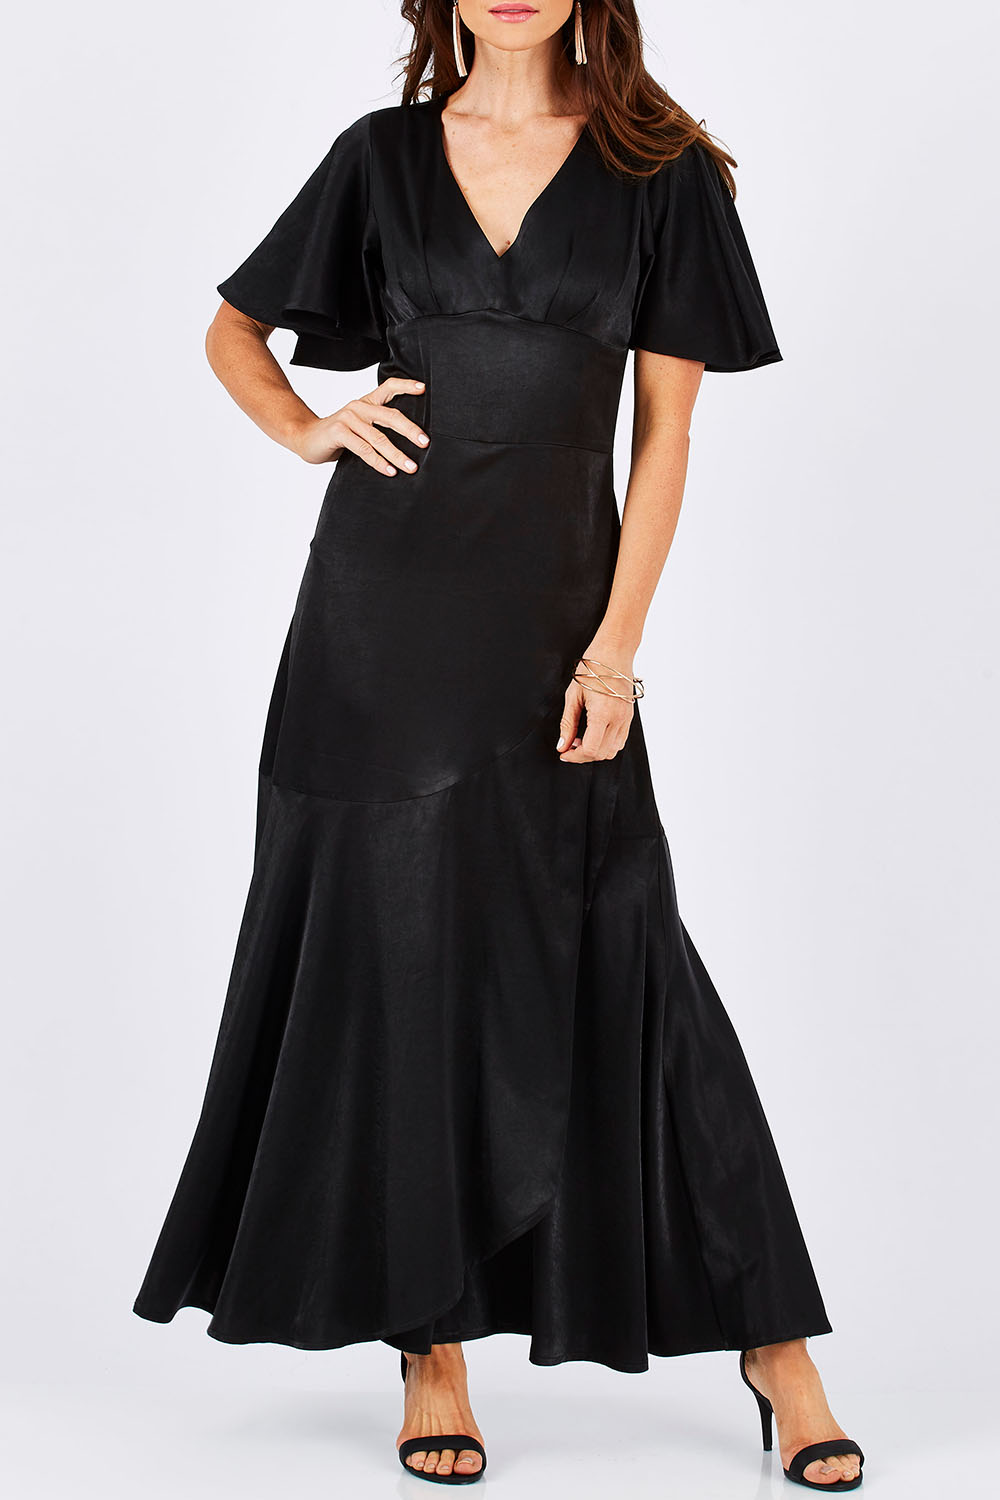 1920s, 1930s Mother of the Bride Groom Dresses